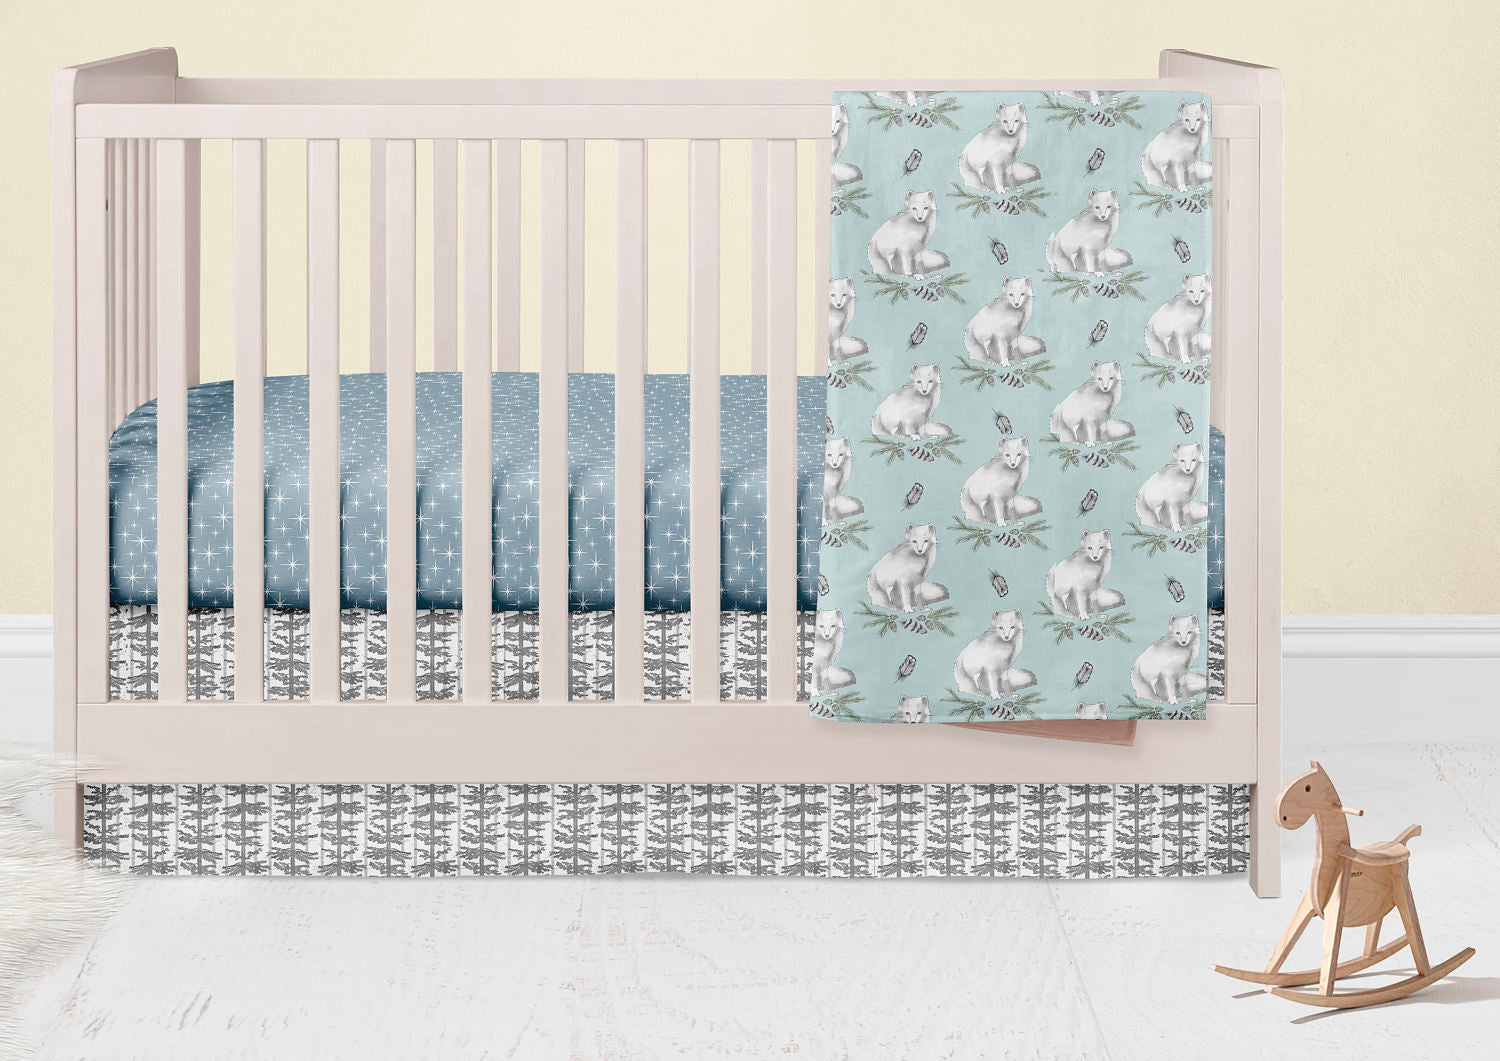 Arctic Fox Nursery Set- Owls Fitted Crib Sheet- Minky Baby Blanket- Crib Skirt-  Rail Guard Cover- Bumper- Changing Pad Cover - Woodland - Dream Evergreen @DreamEvergreen